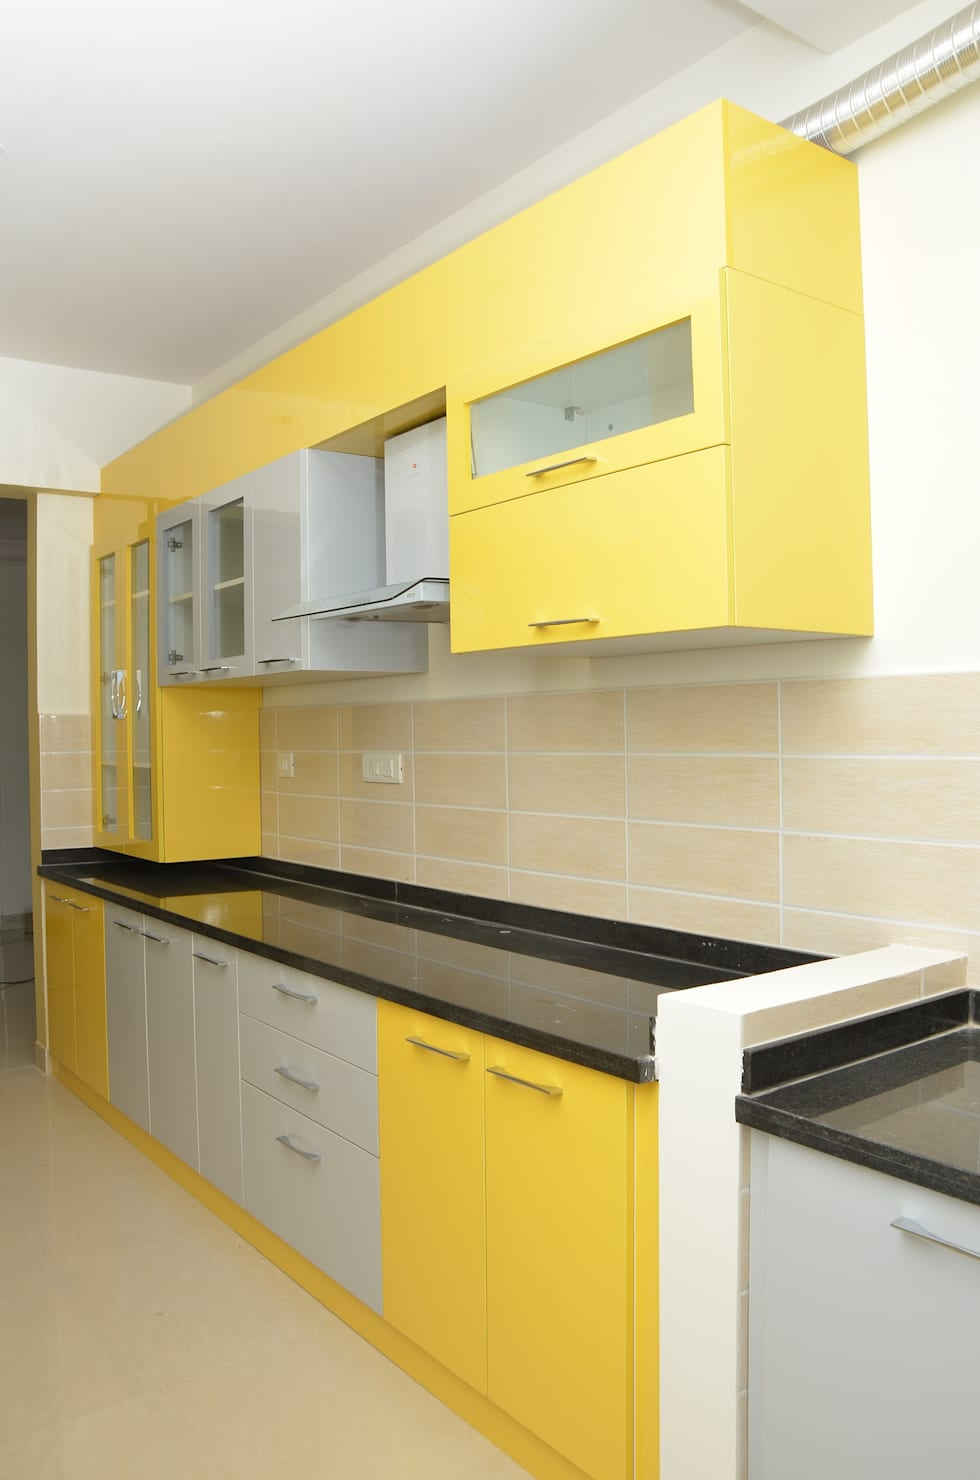 Parallel Kitchen Design Ideas Part - 35: Parallel Kitchen Design Photos: Asian Kitchen By Scale Inch Pvt. Ltd.